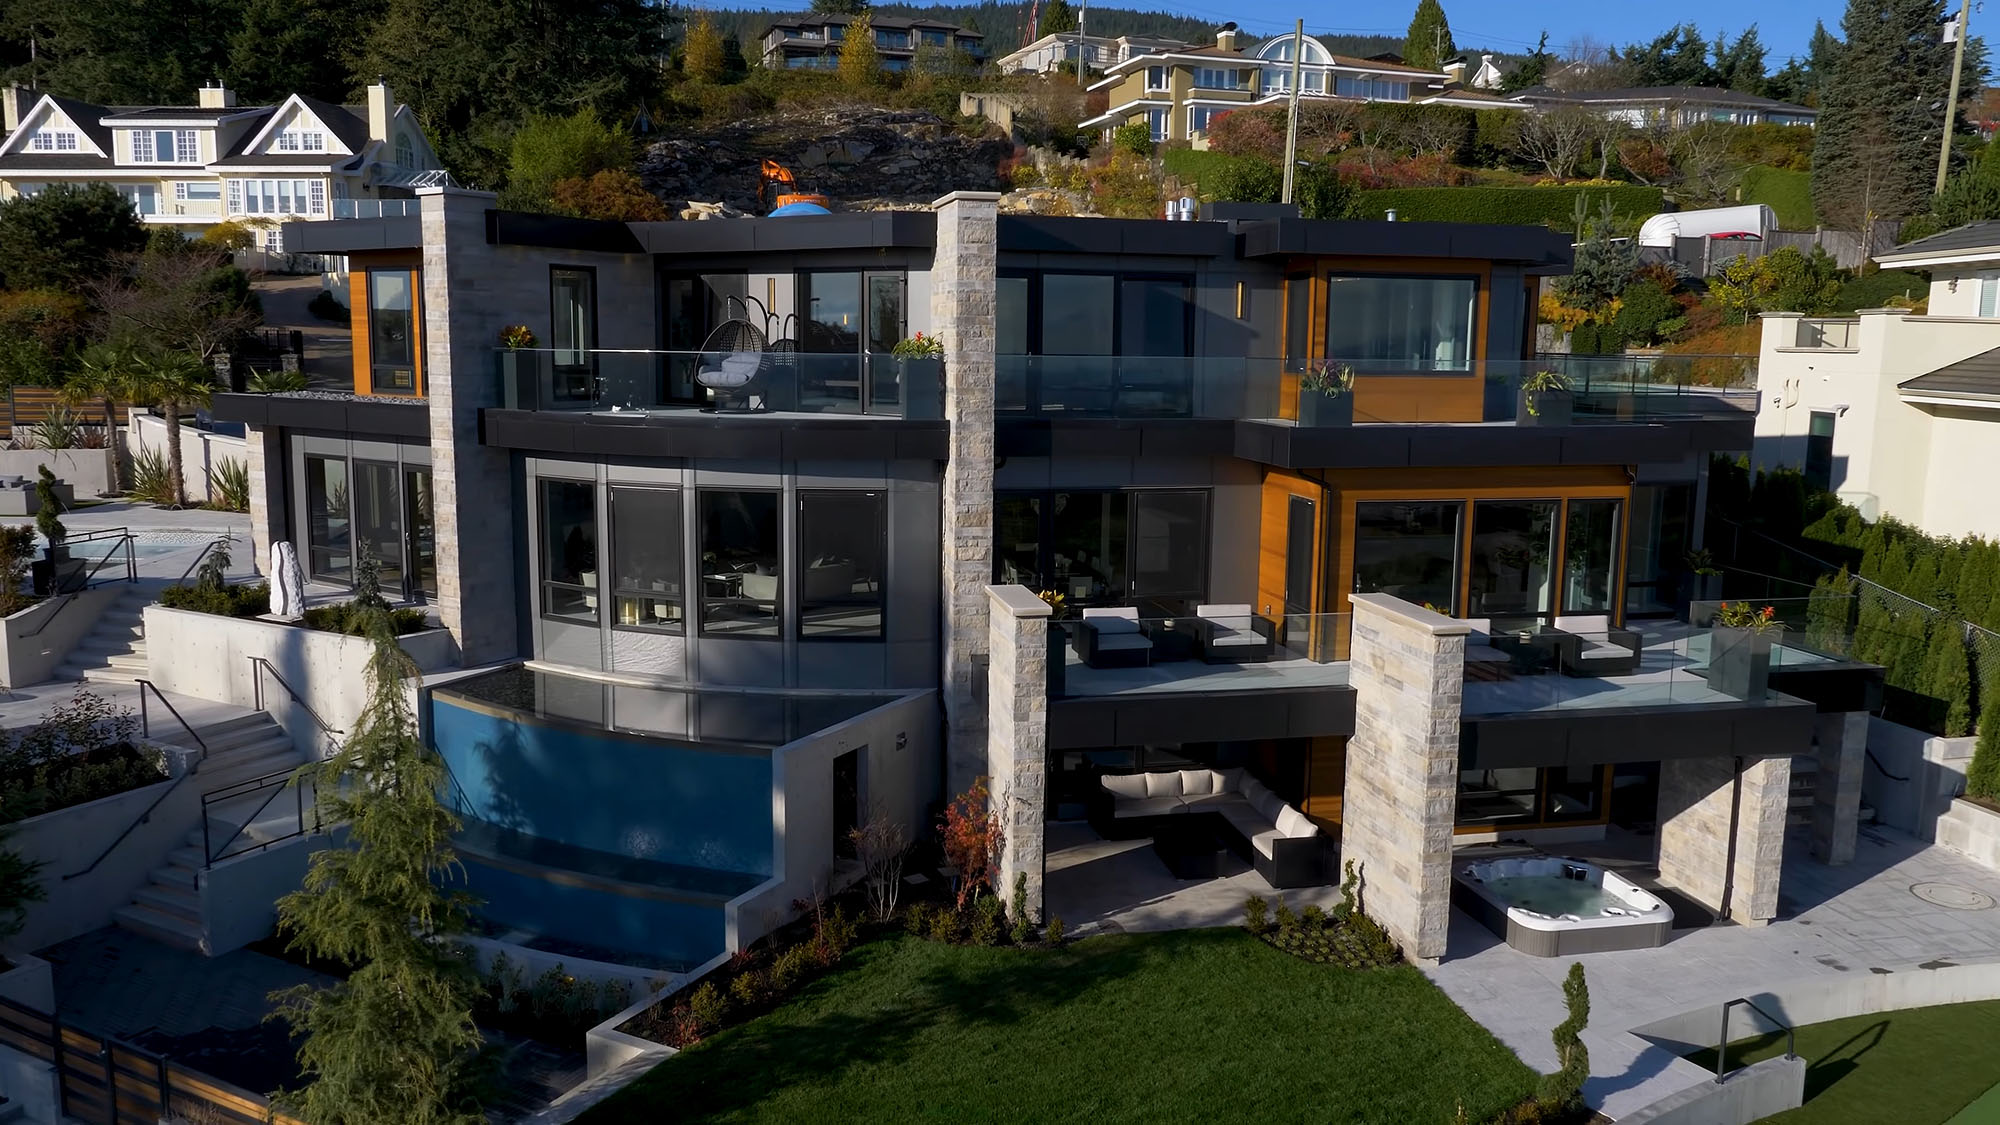 Ultra modern three story house with a flat roof and tons of outdoor living spaces.